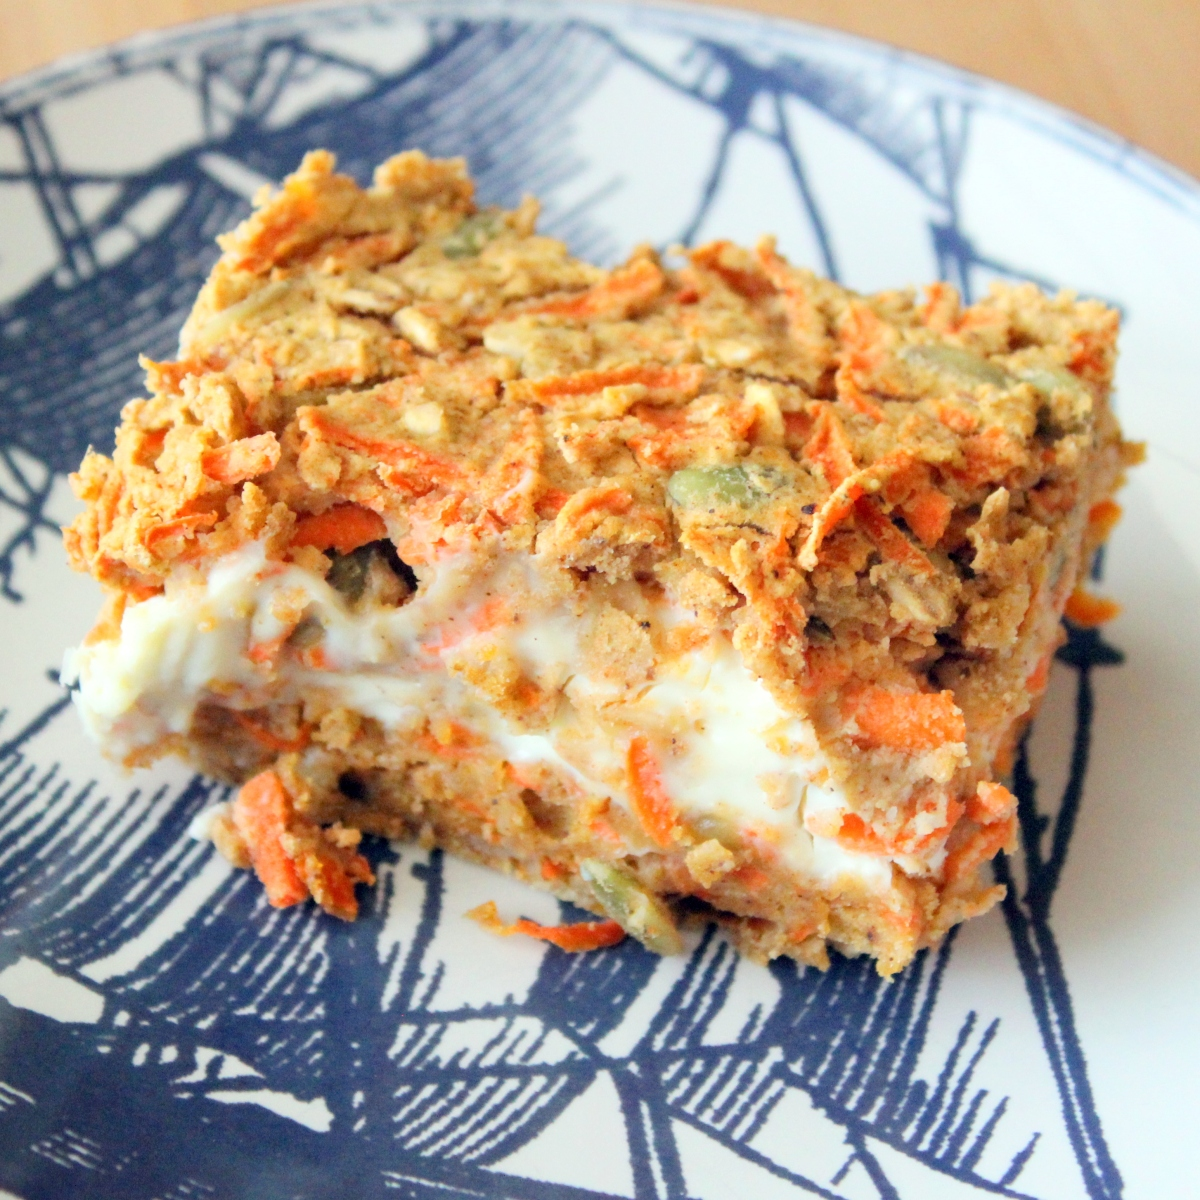 Recipe: Breakfast Carrot Cake Squares (Gluten Free)